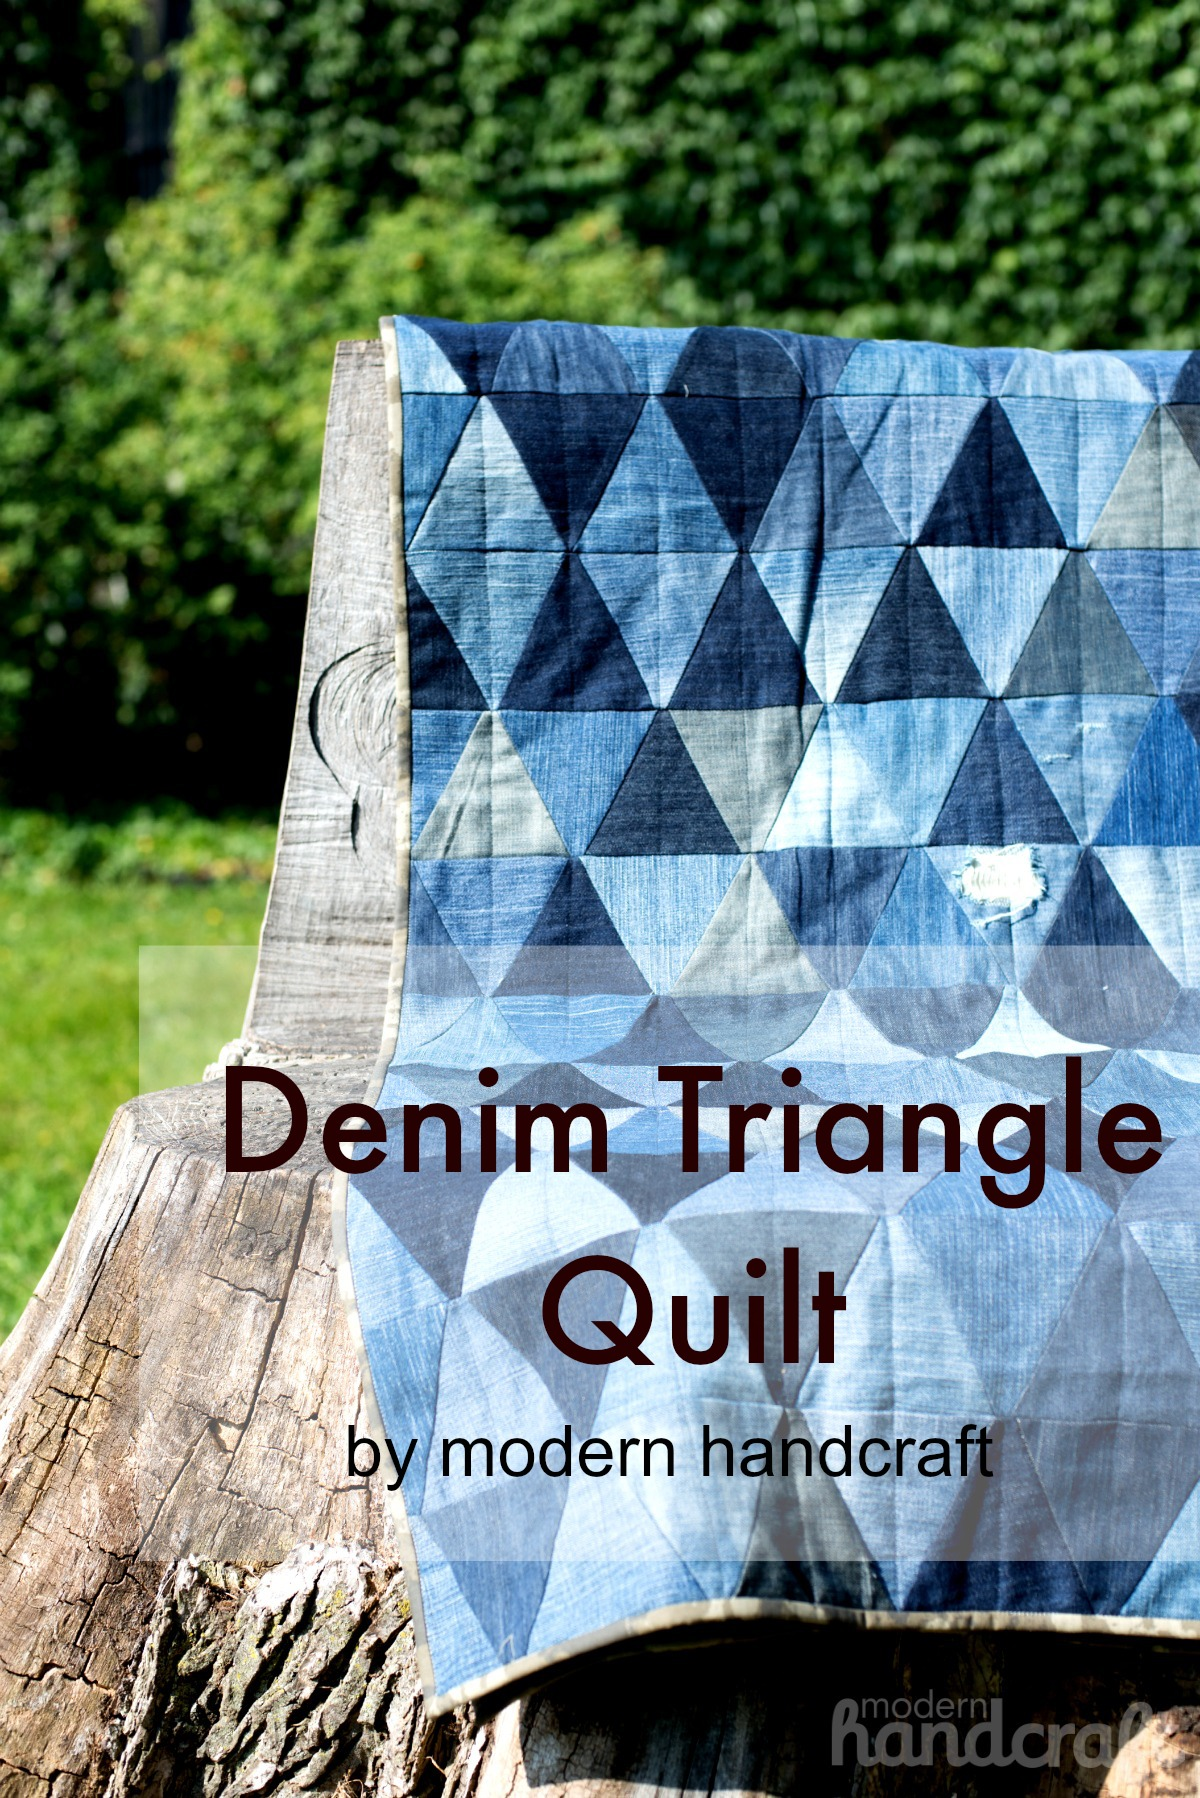 Modern Handcraft // Denim Triangle Quit